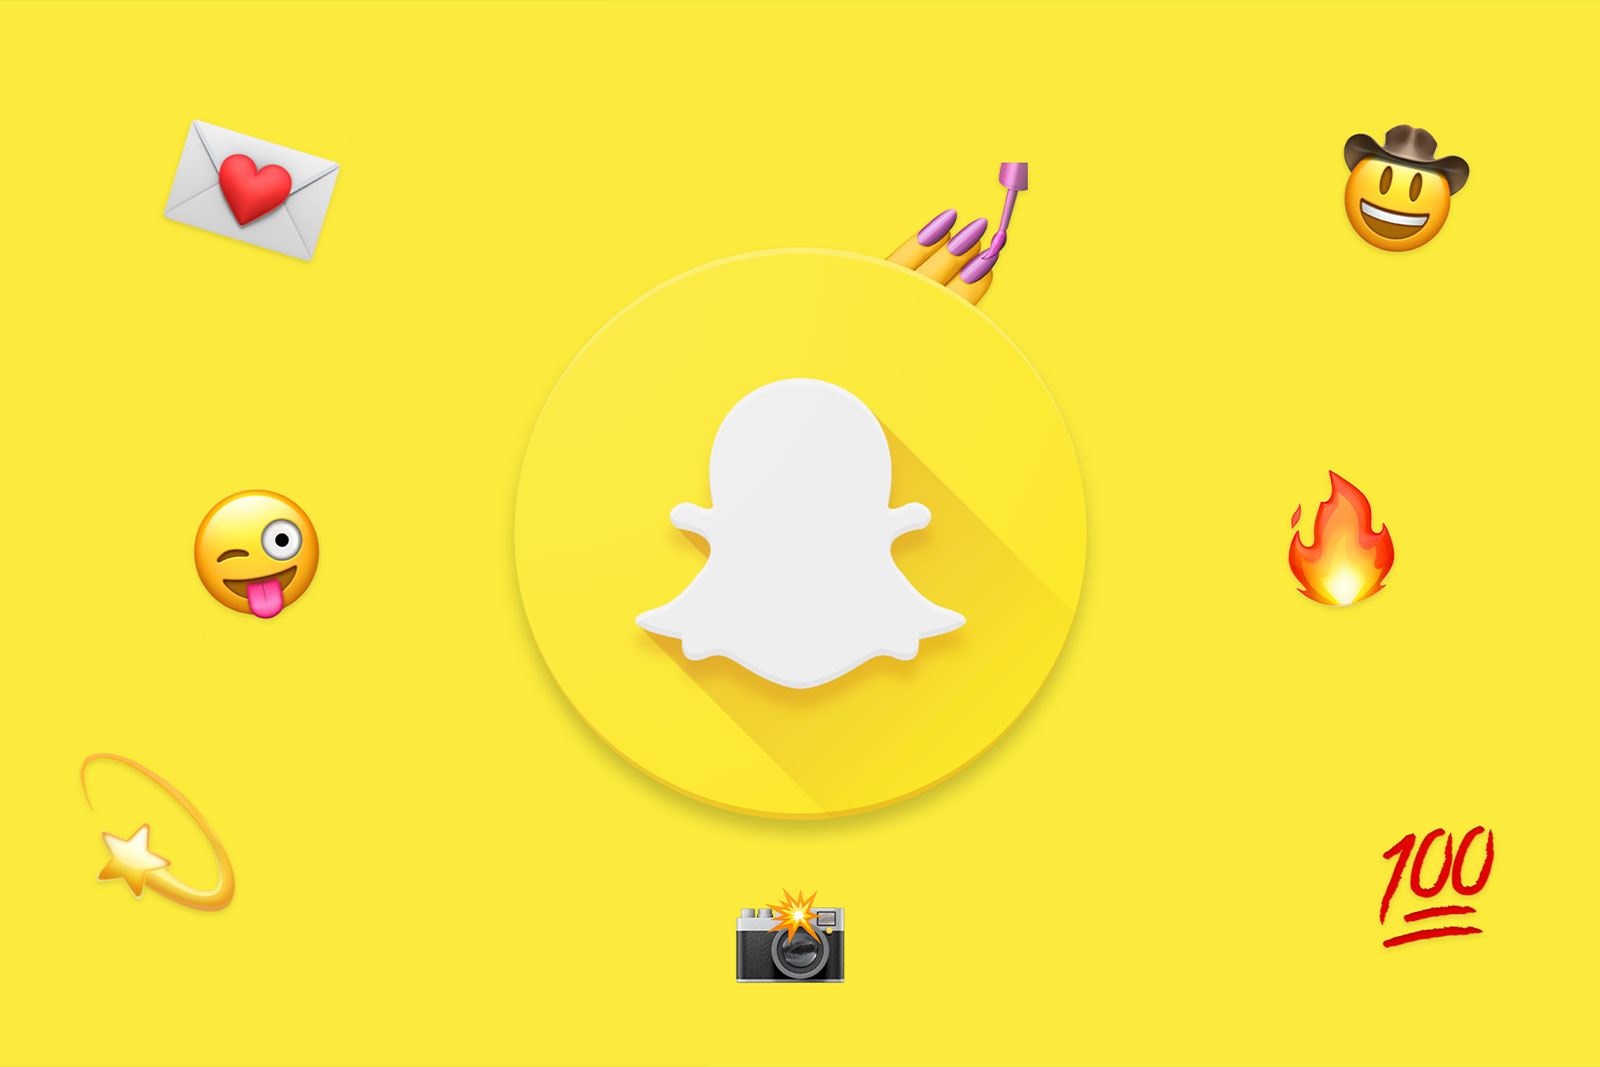 How to Get More Views & Followers on Snapchat